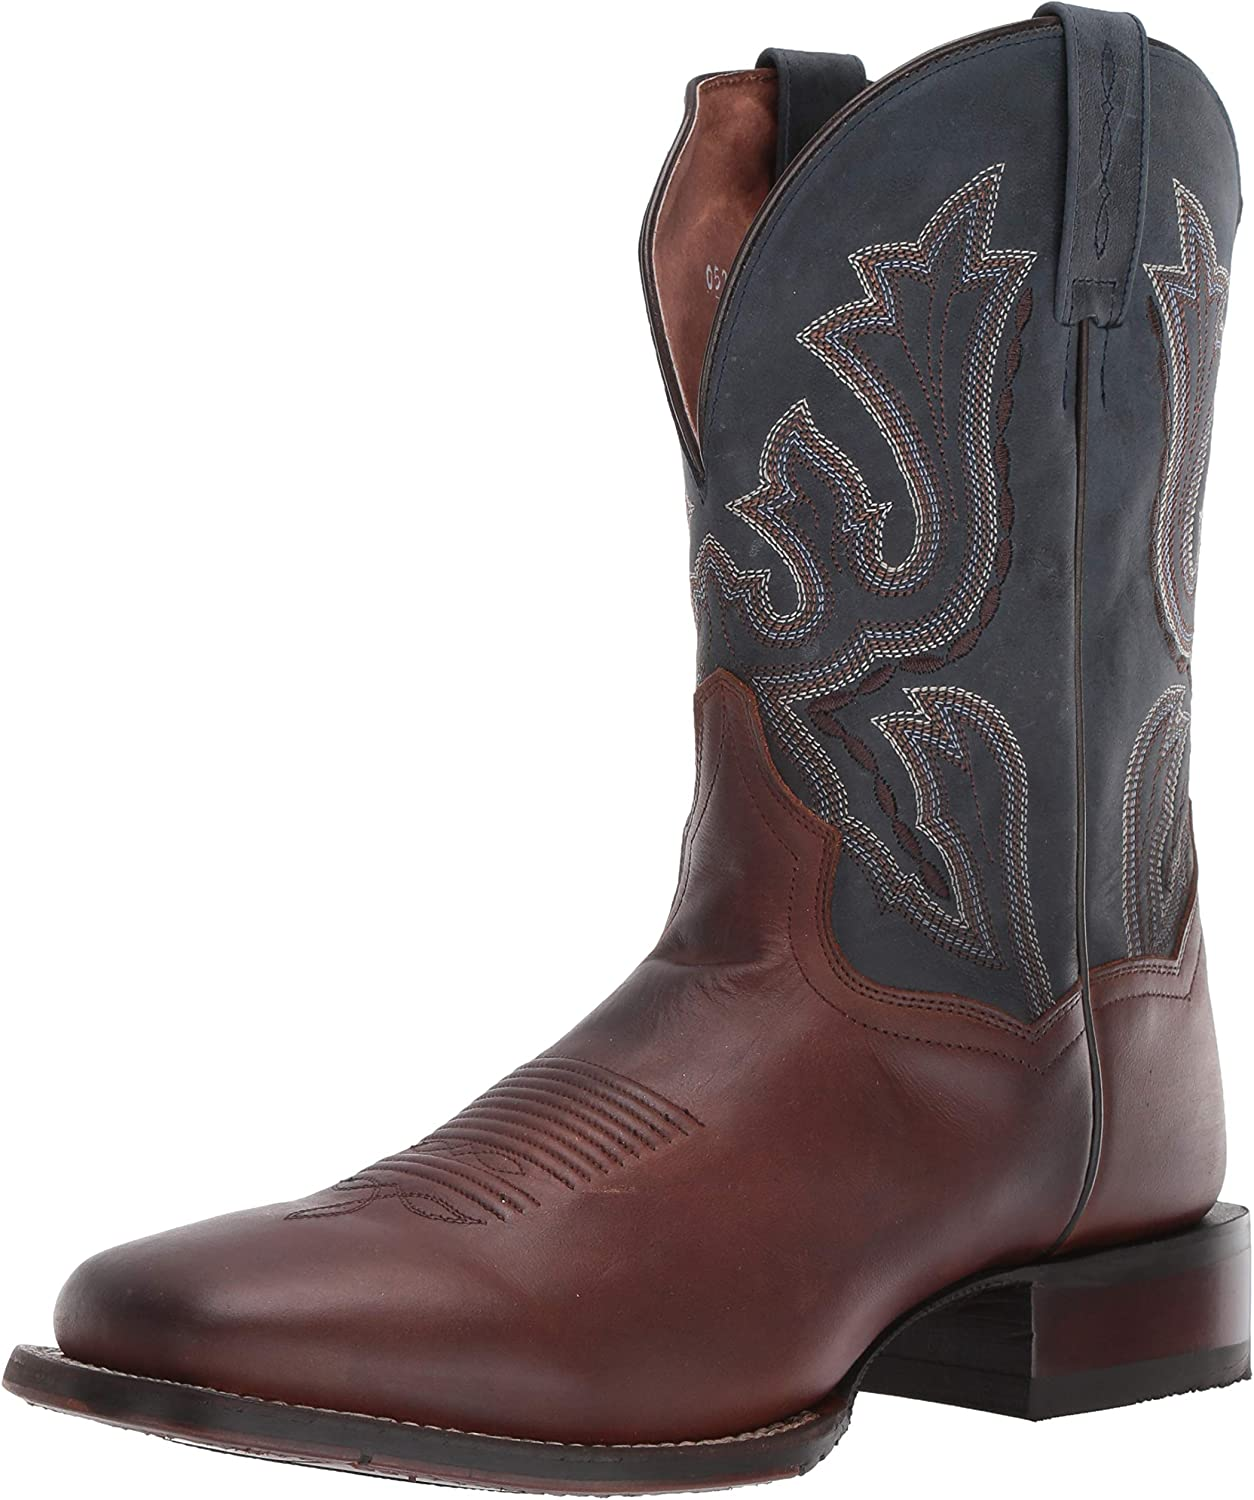 Dan Post Popular shop is the lowest price challenge Boots Mens Winslow Square Western Boot Cowboy Dress Free shipping on posting reviews Toe